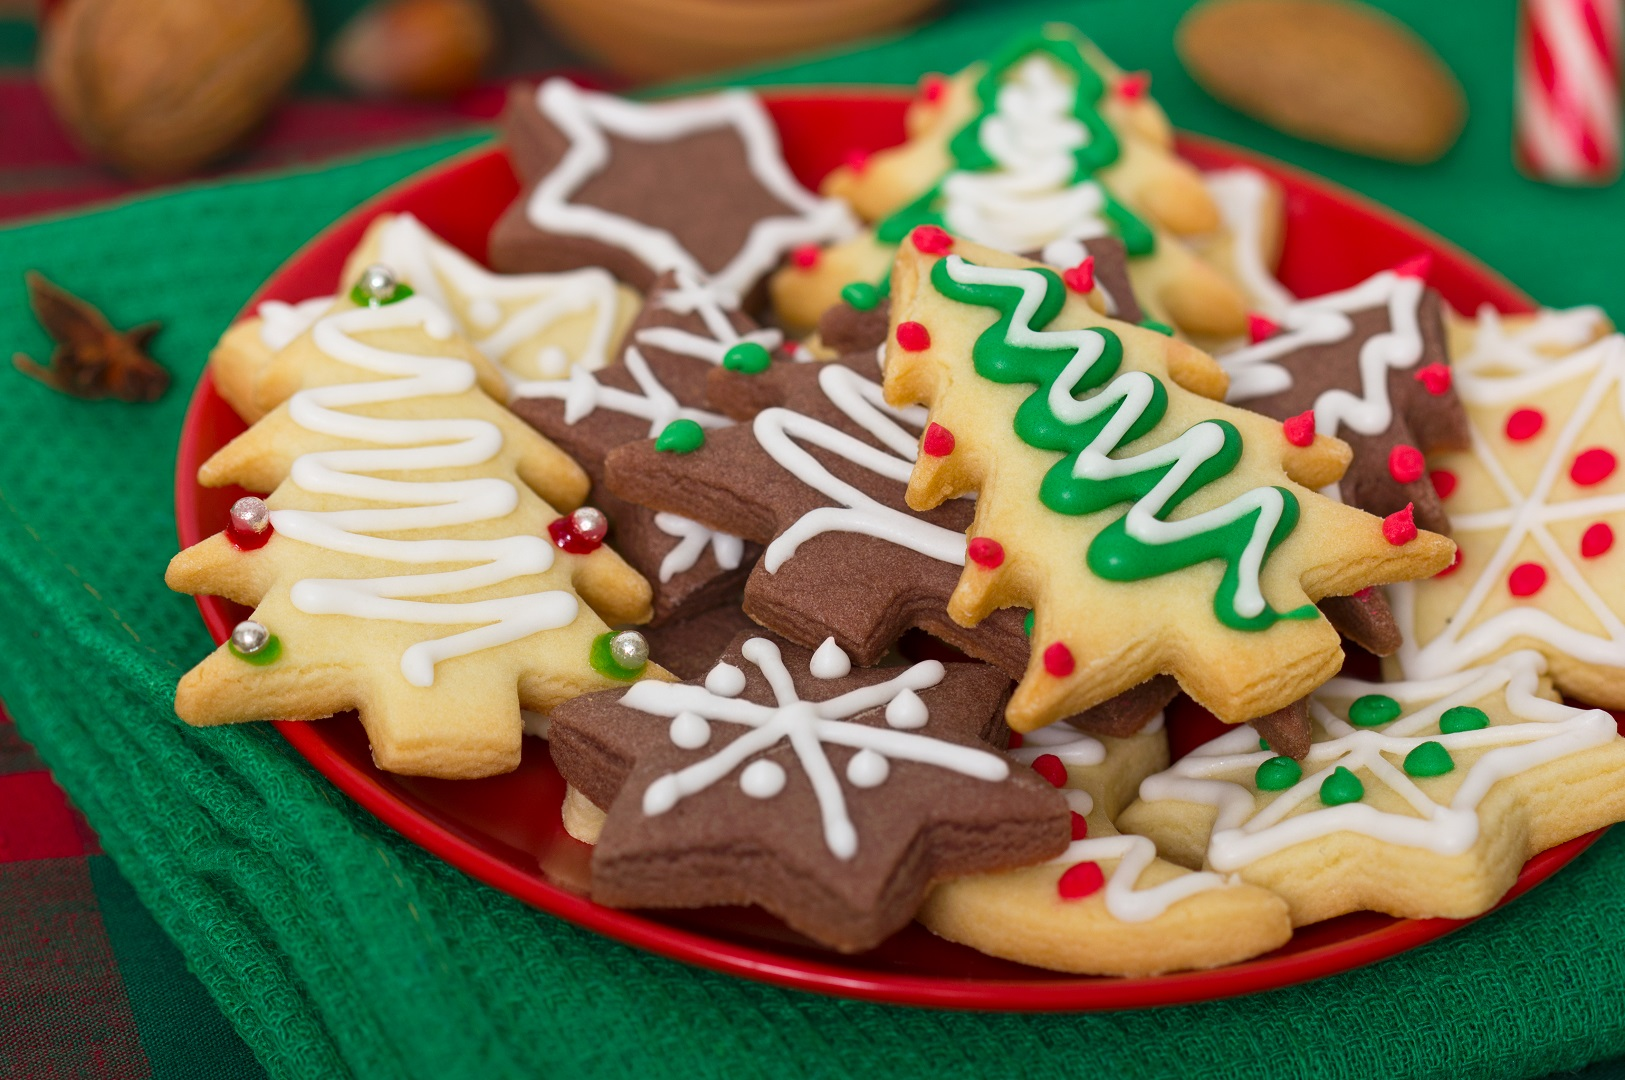 Holiday Christmas Sugar Cookies with Frosting on Plate